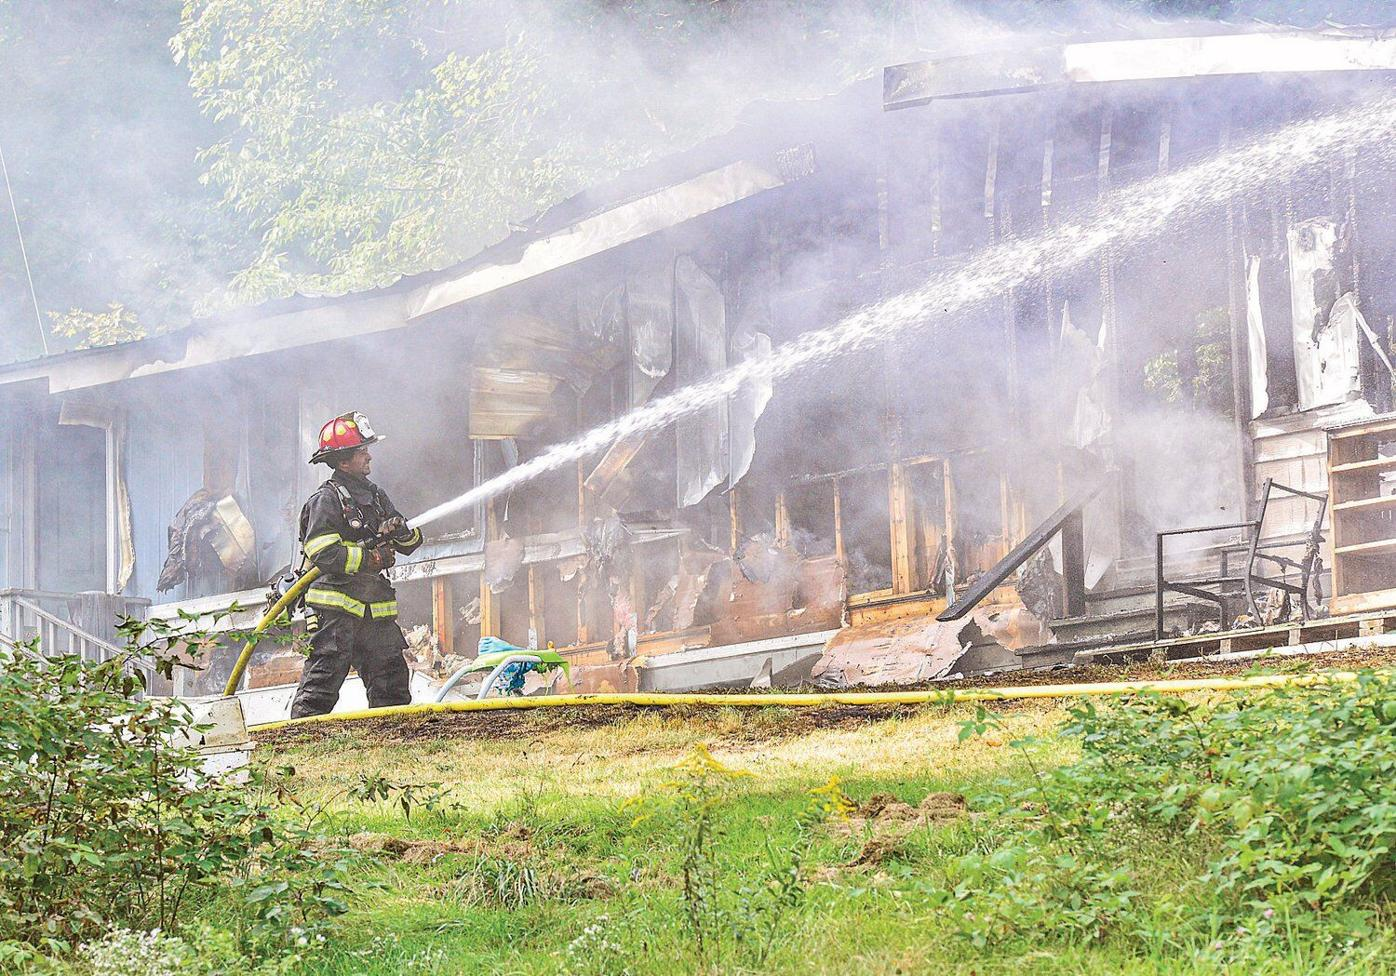 Fire guts Guilford home, pets missing